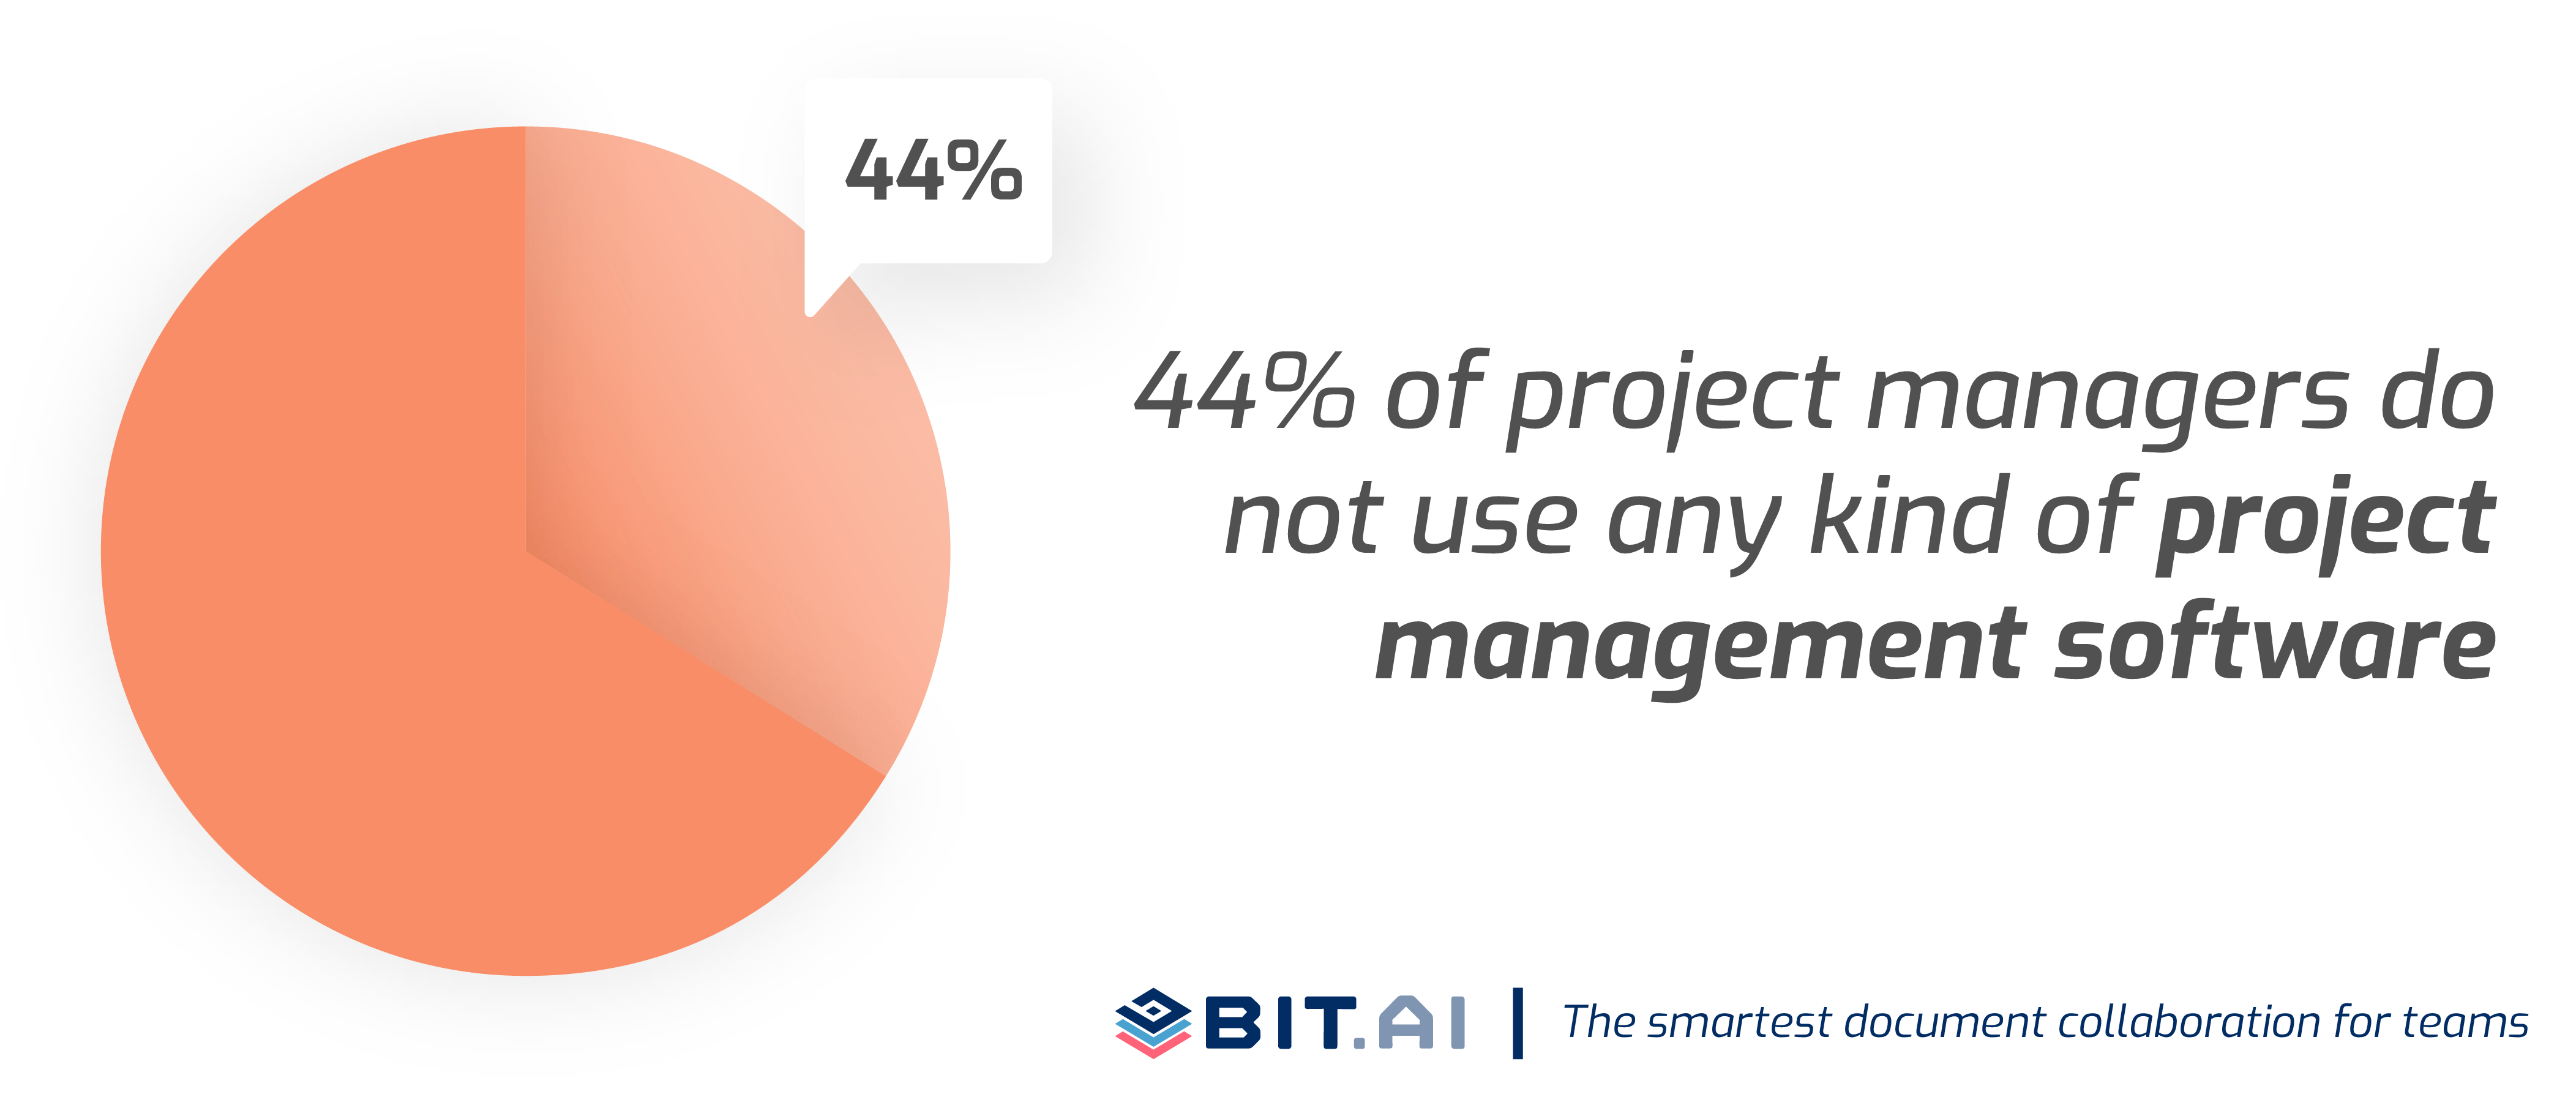 Pie chart on use of project planning software in businesses